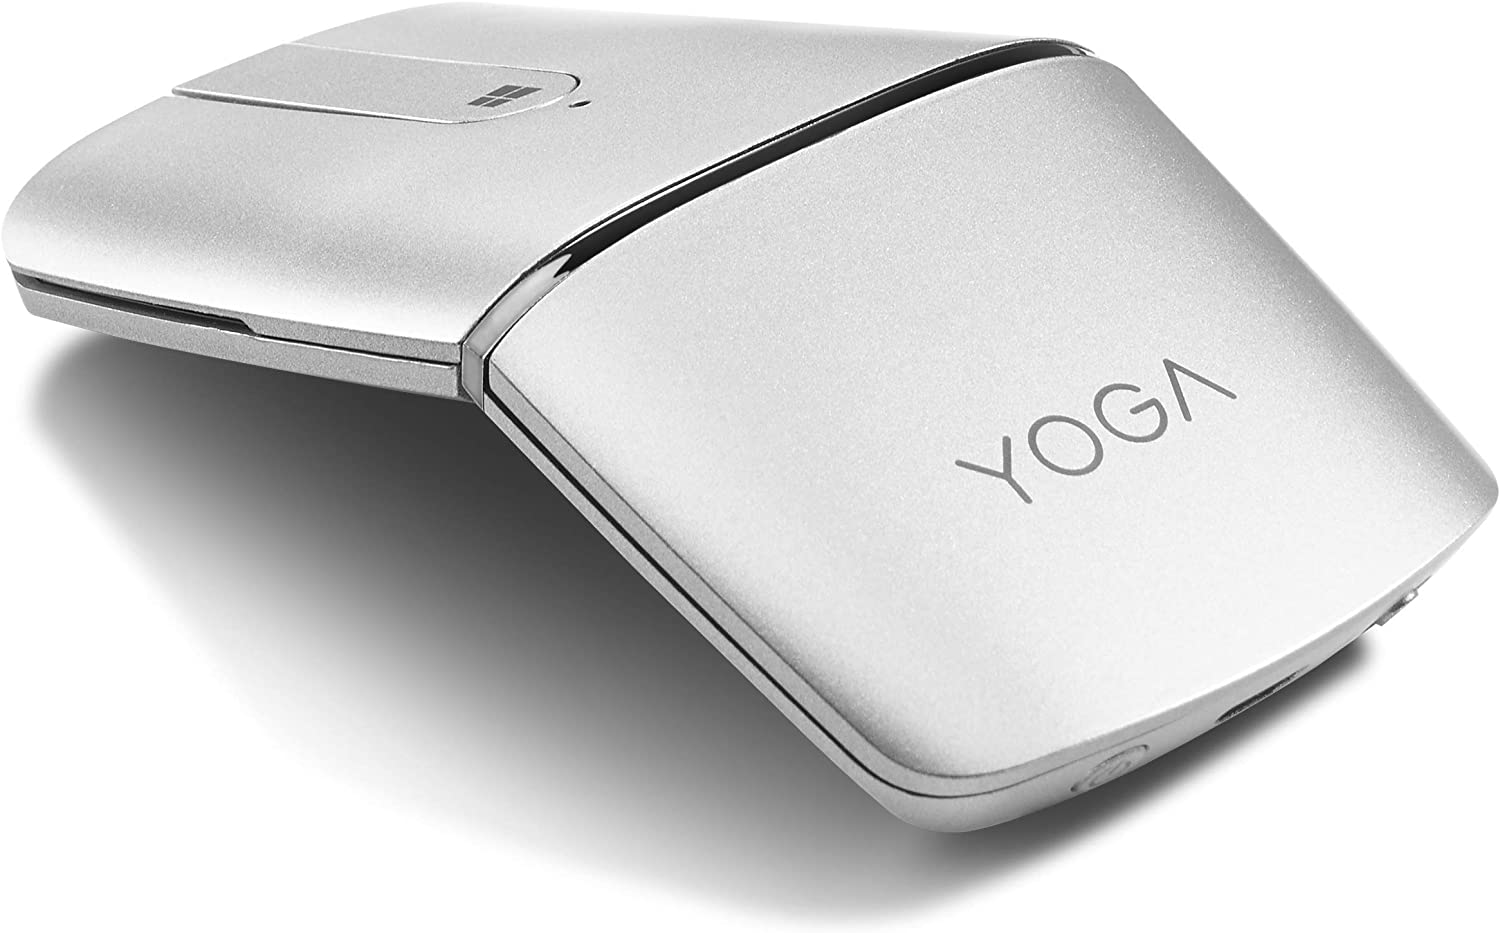 Lenovo Yoga Mouse, Silver, Ultra Slim 13.5mm, 180 Degree rotatable Hinge, 2.4G or Bluetooth 4.0 Wireless Connection, Multilayer Adaptive touchpad, Rechargeable Battery, GX30K69568